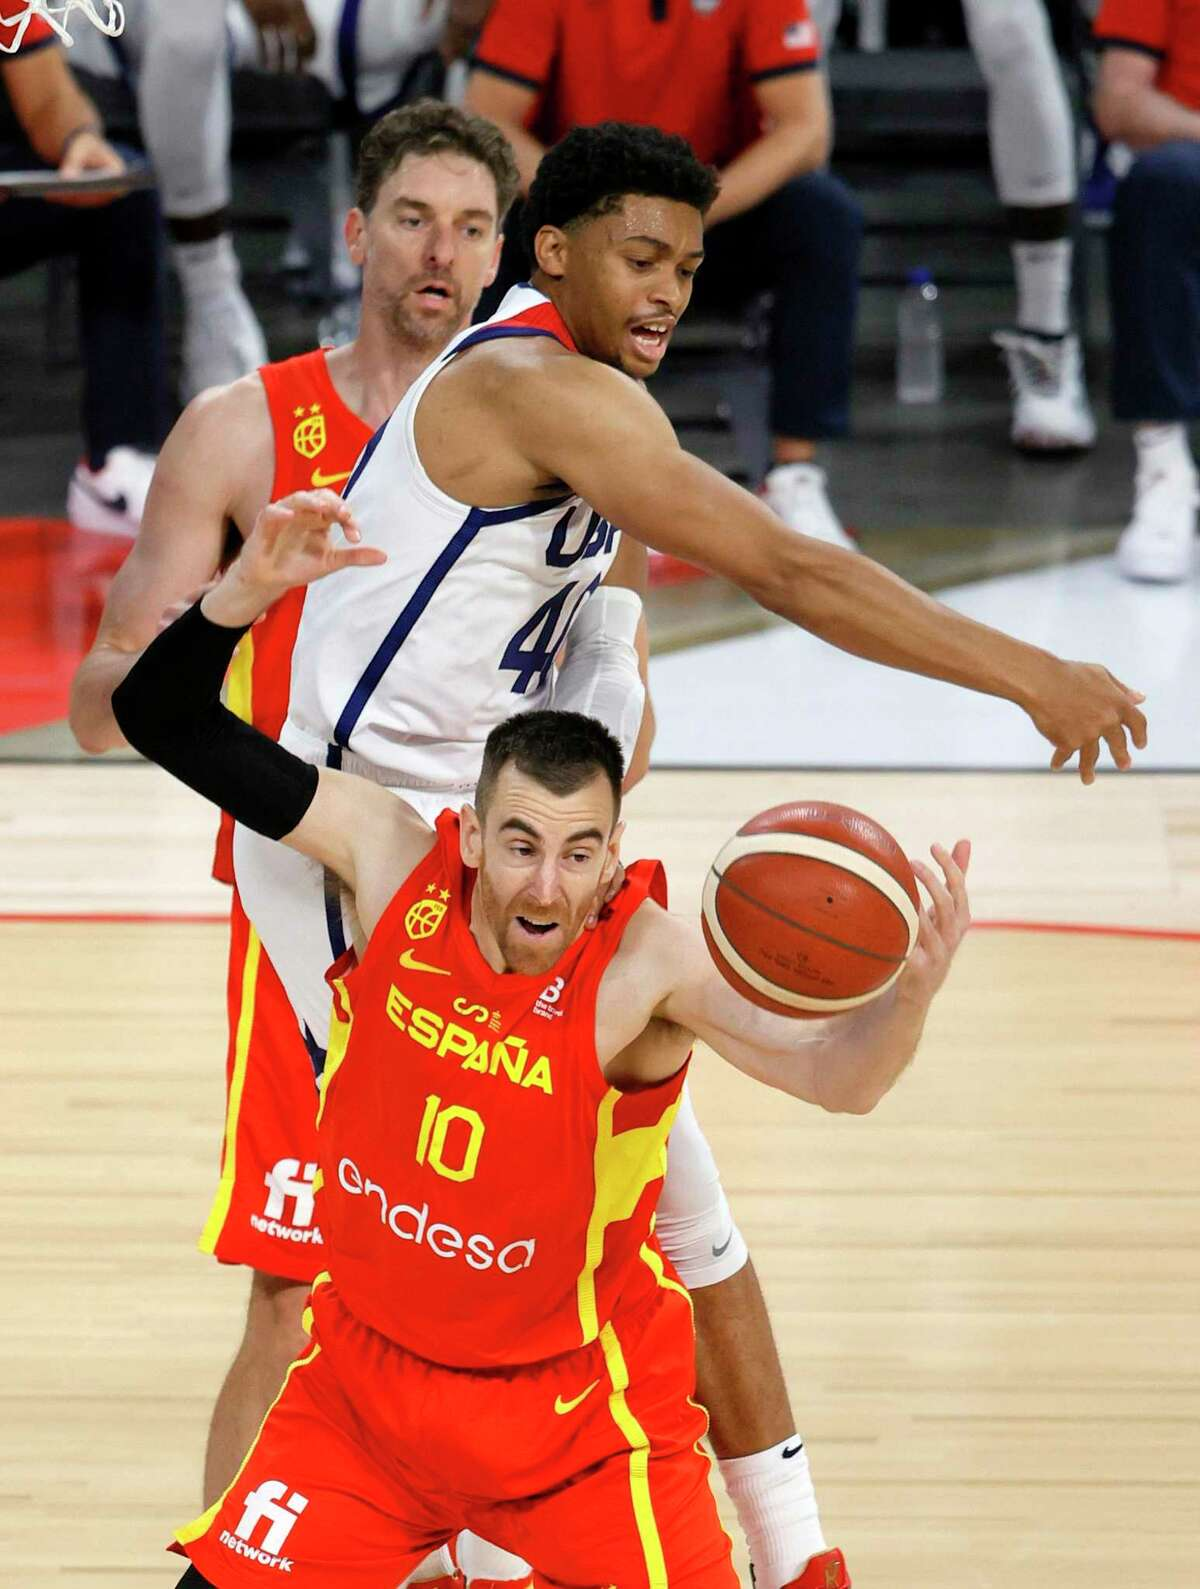 LAS VEGAS, NEVADA - JULY 18: Keldon Johnson #40 of the United States and Victor Claver #10 of Spain fight for a rebound during an exhibition game at Michelob ULTRA Arena ahead of the Tokyo Olympic Games on July 18, 2021 in Las Vegas, Nevada. The United States defeated Spain 83-76. (Photo by Ethan Miller/Getty Images)